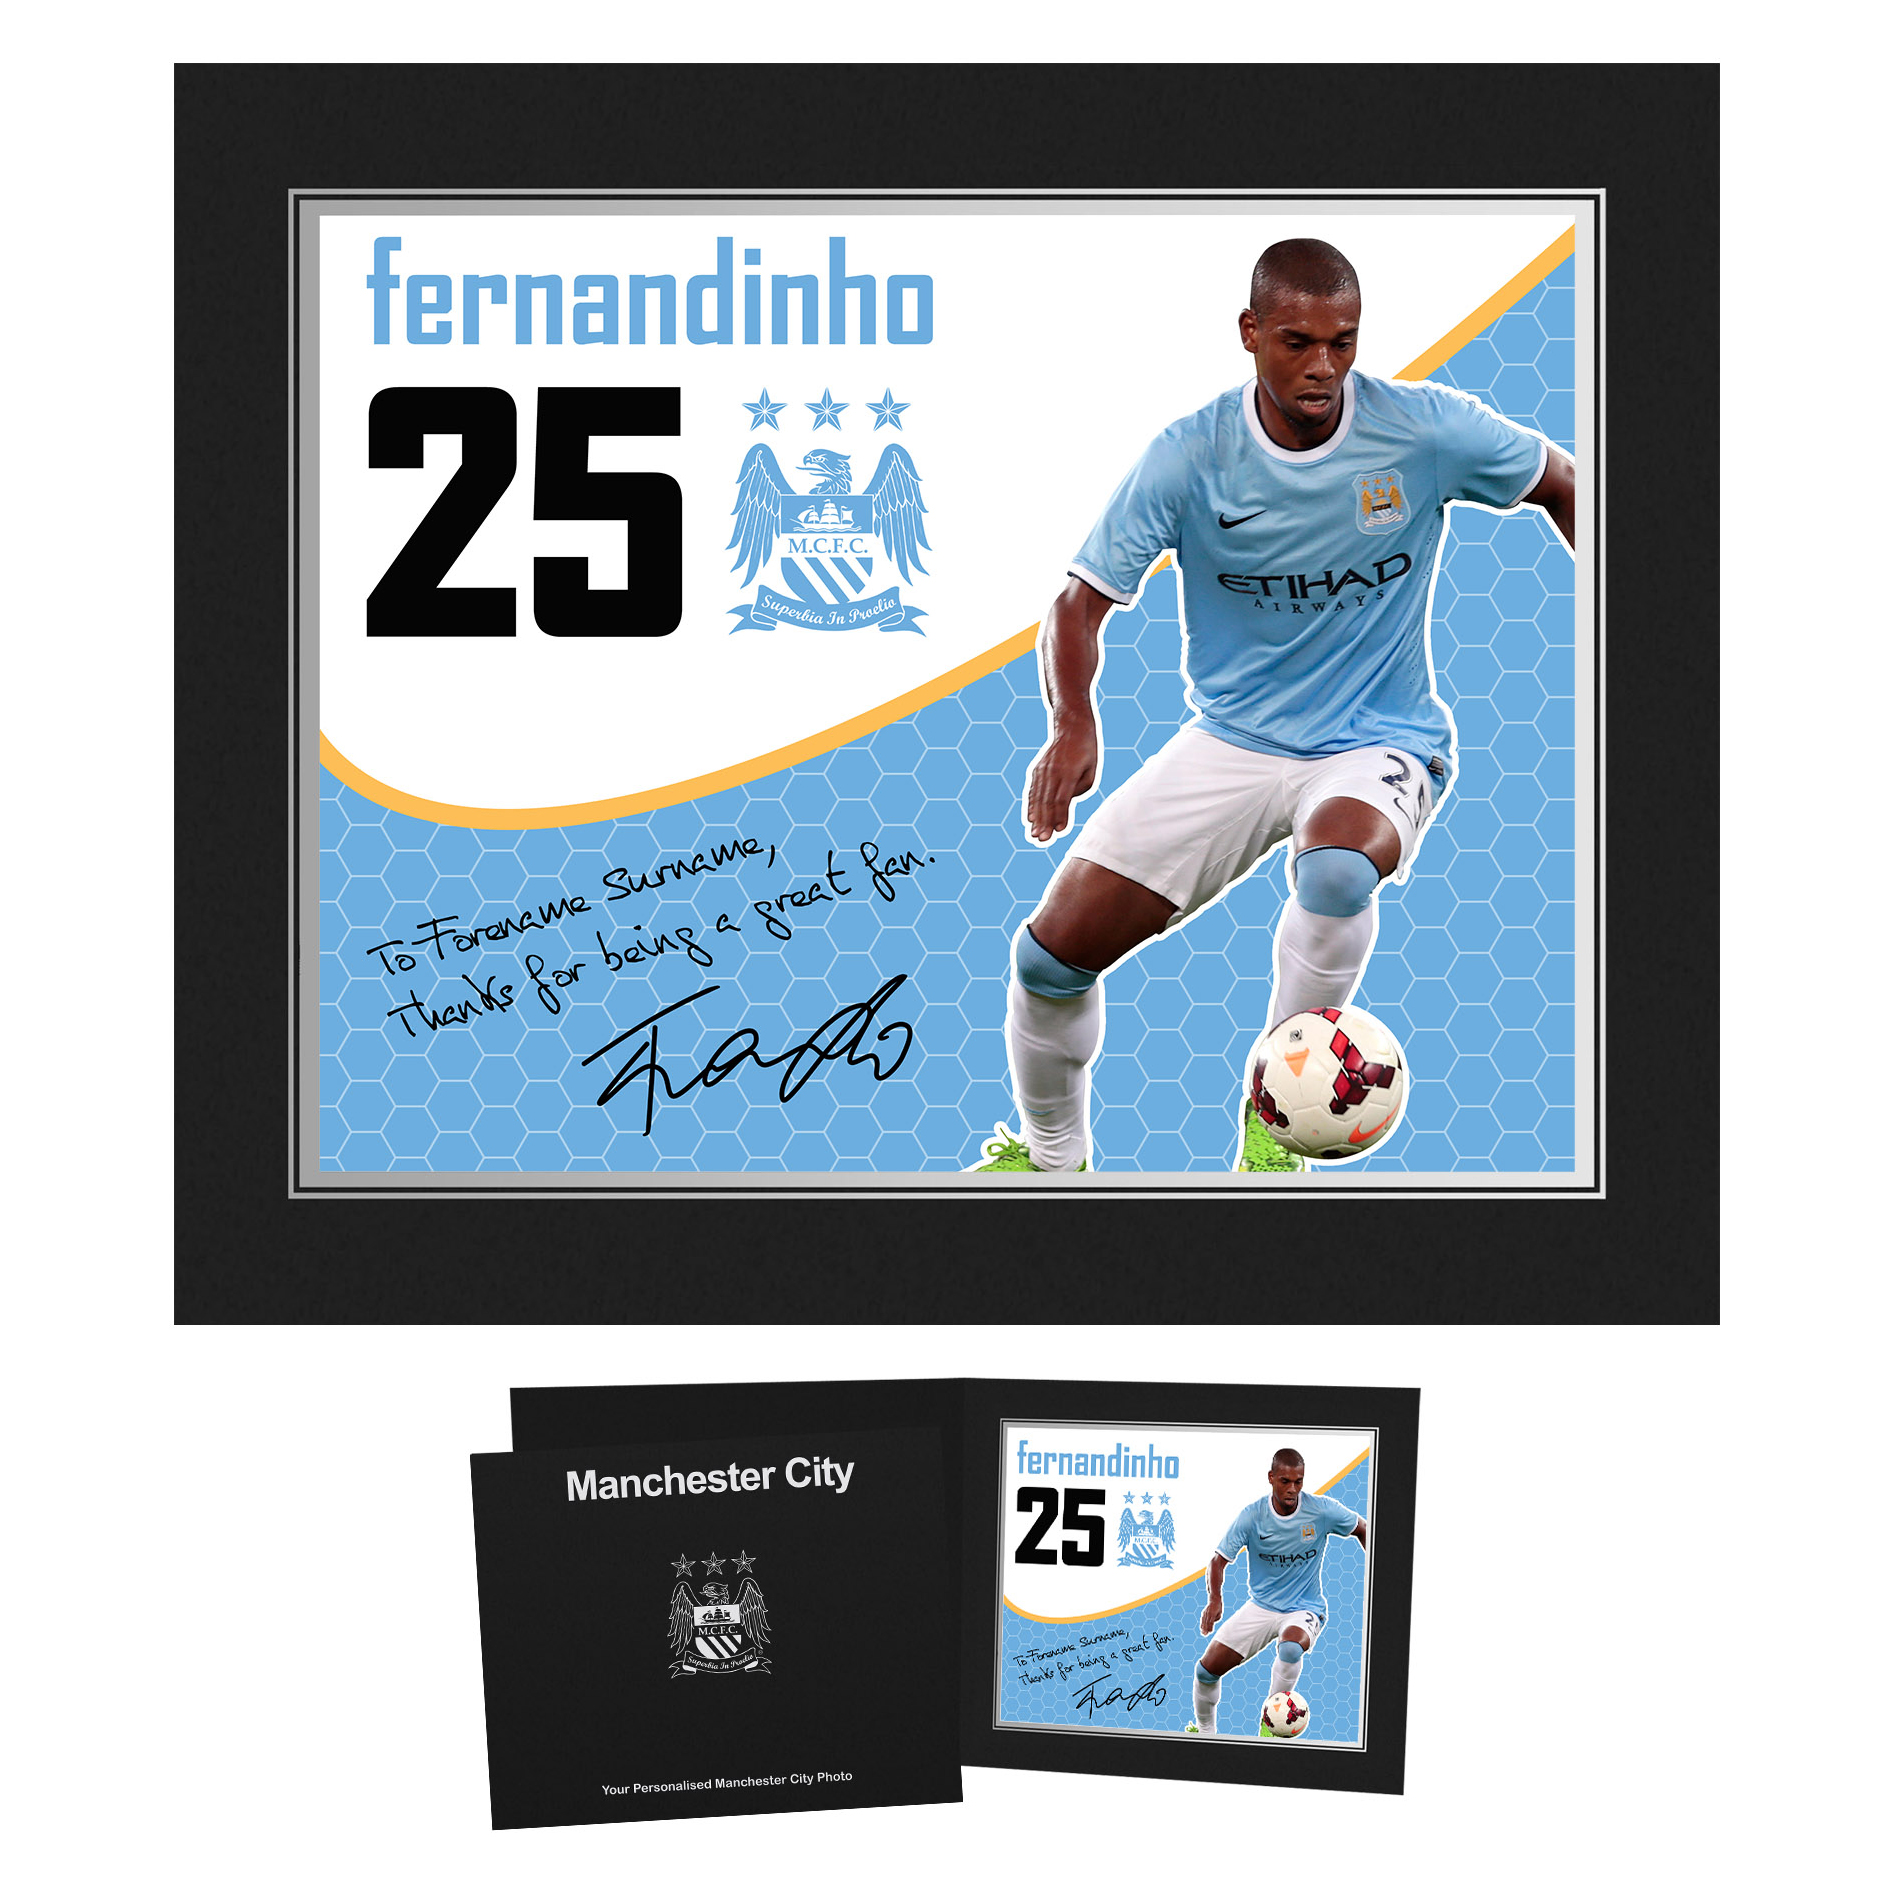 Manchester City Personalised Swirl Signature Photo in Presentation Folder - Fernandinho